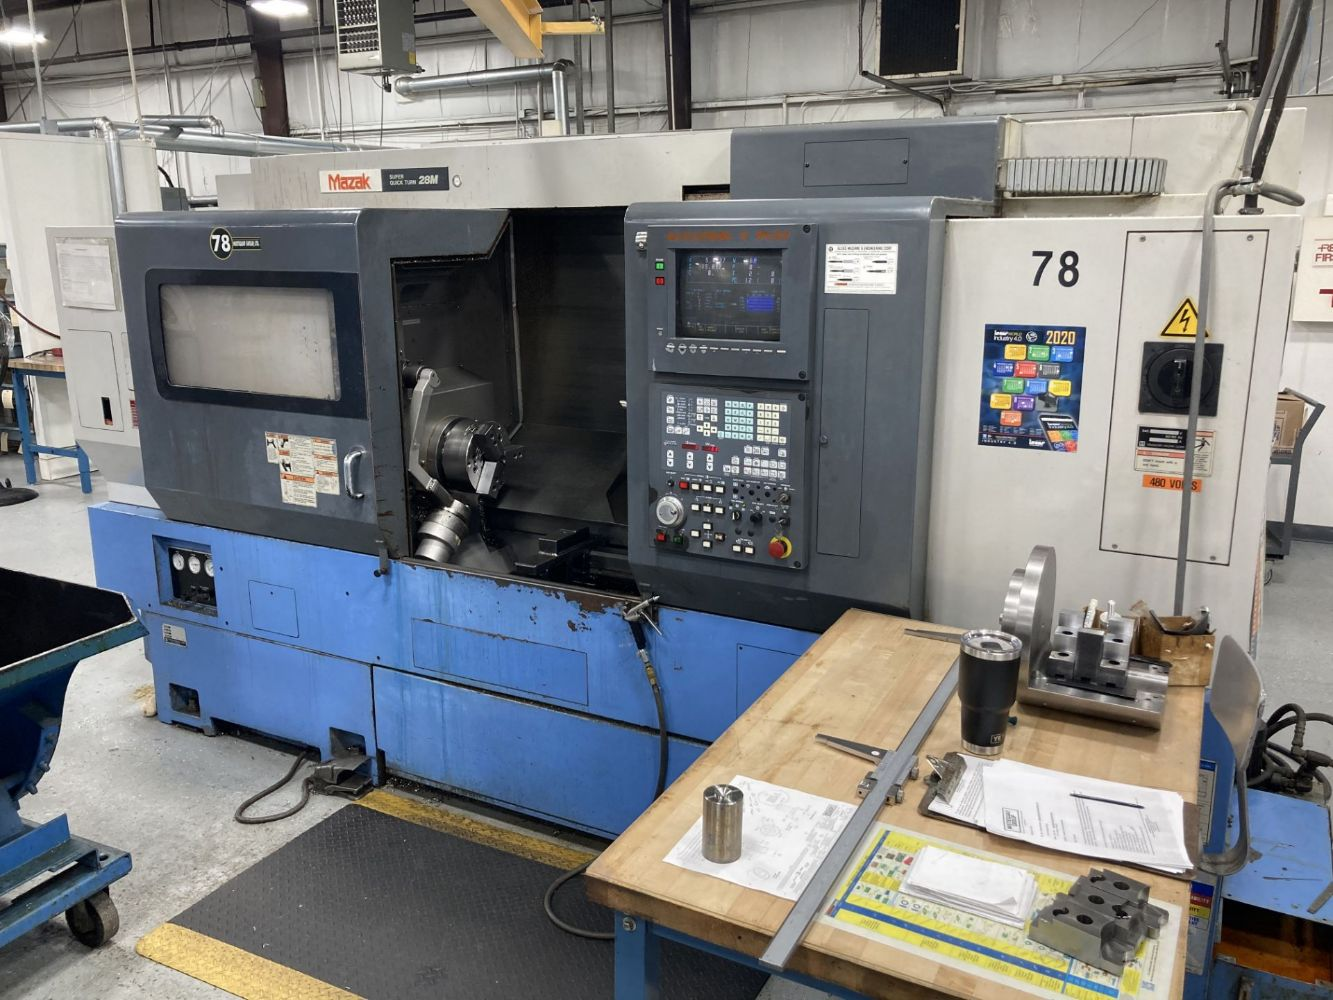 Surplus Metalworking Machinery to Ongoing Operations: Multi-Location Sale